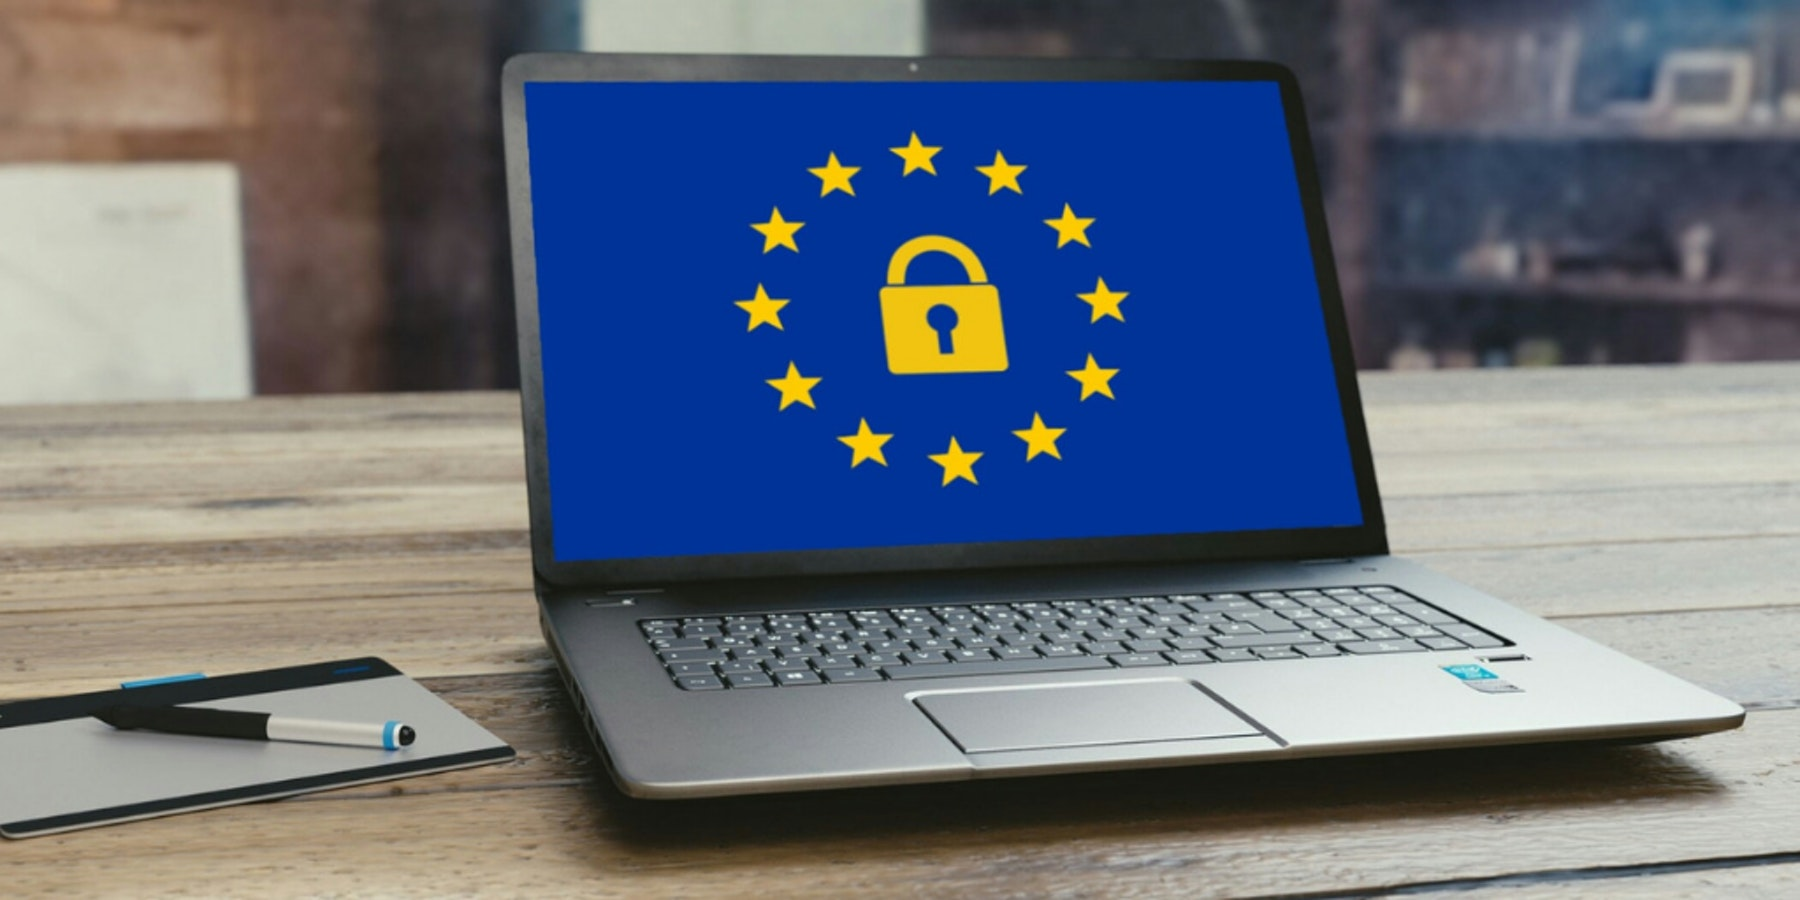 Don't put your brand at risk by ignoring regulations like the GDPR